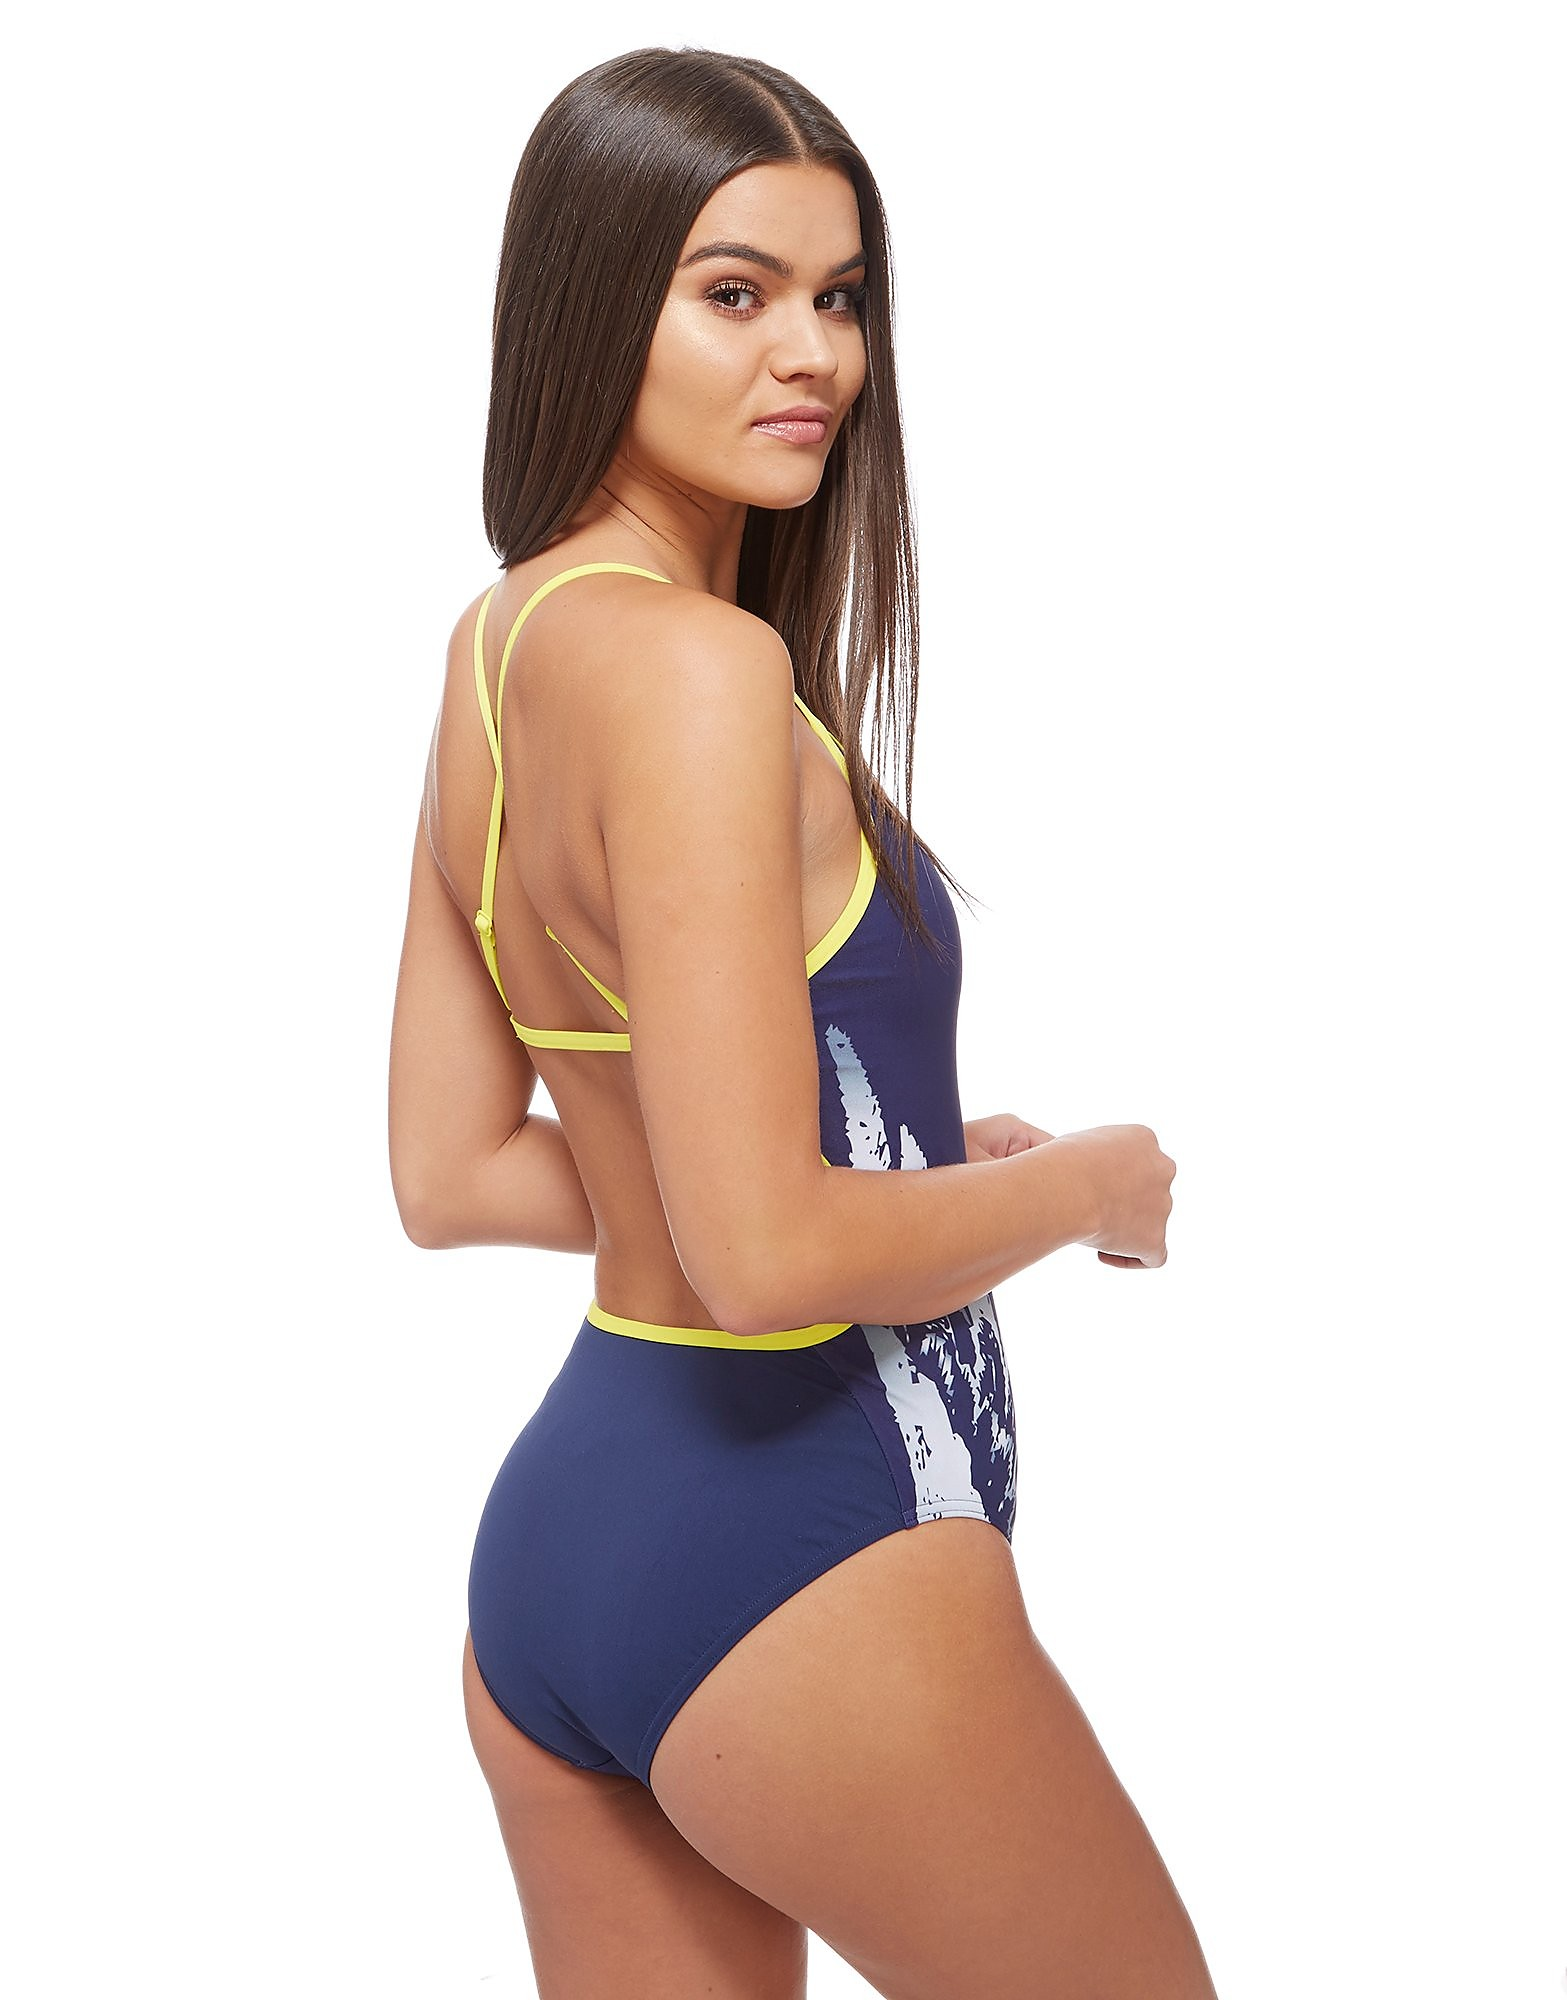 Arena Sarah Sjostrom Elite Swimsuit